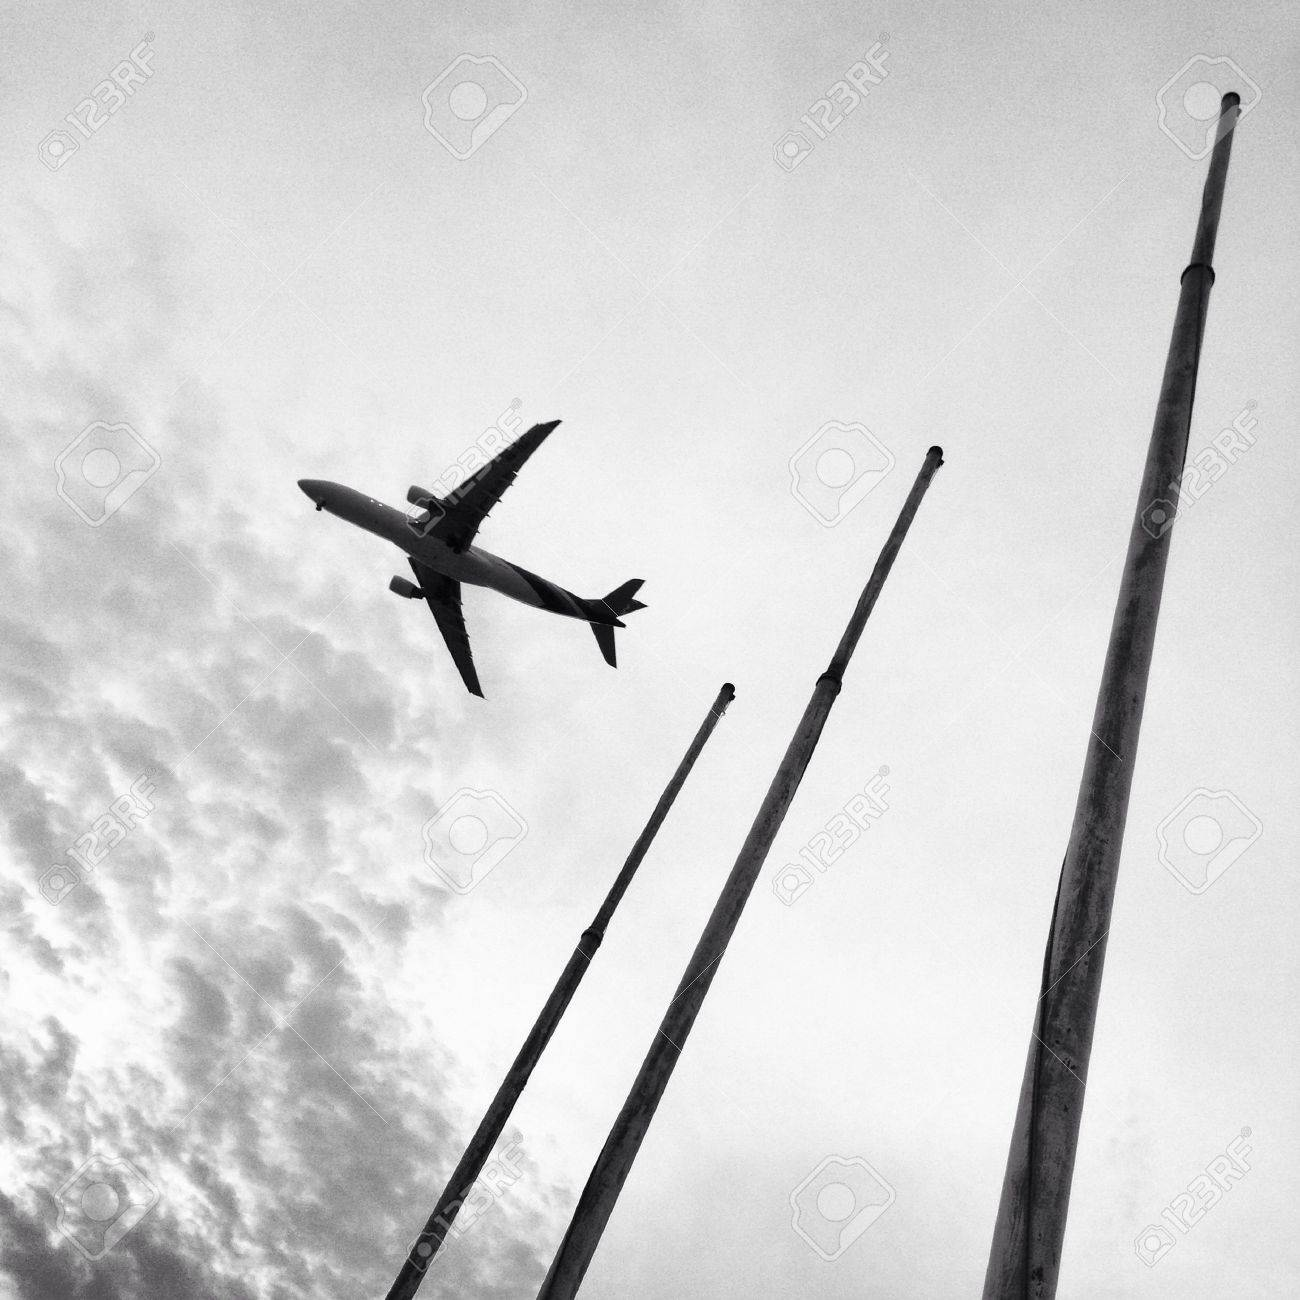 plane is flying over poles - 21341854